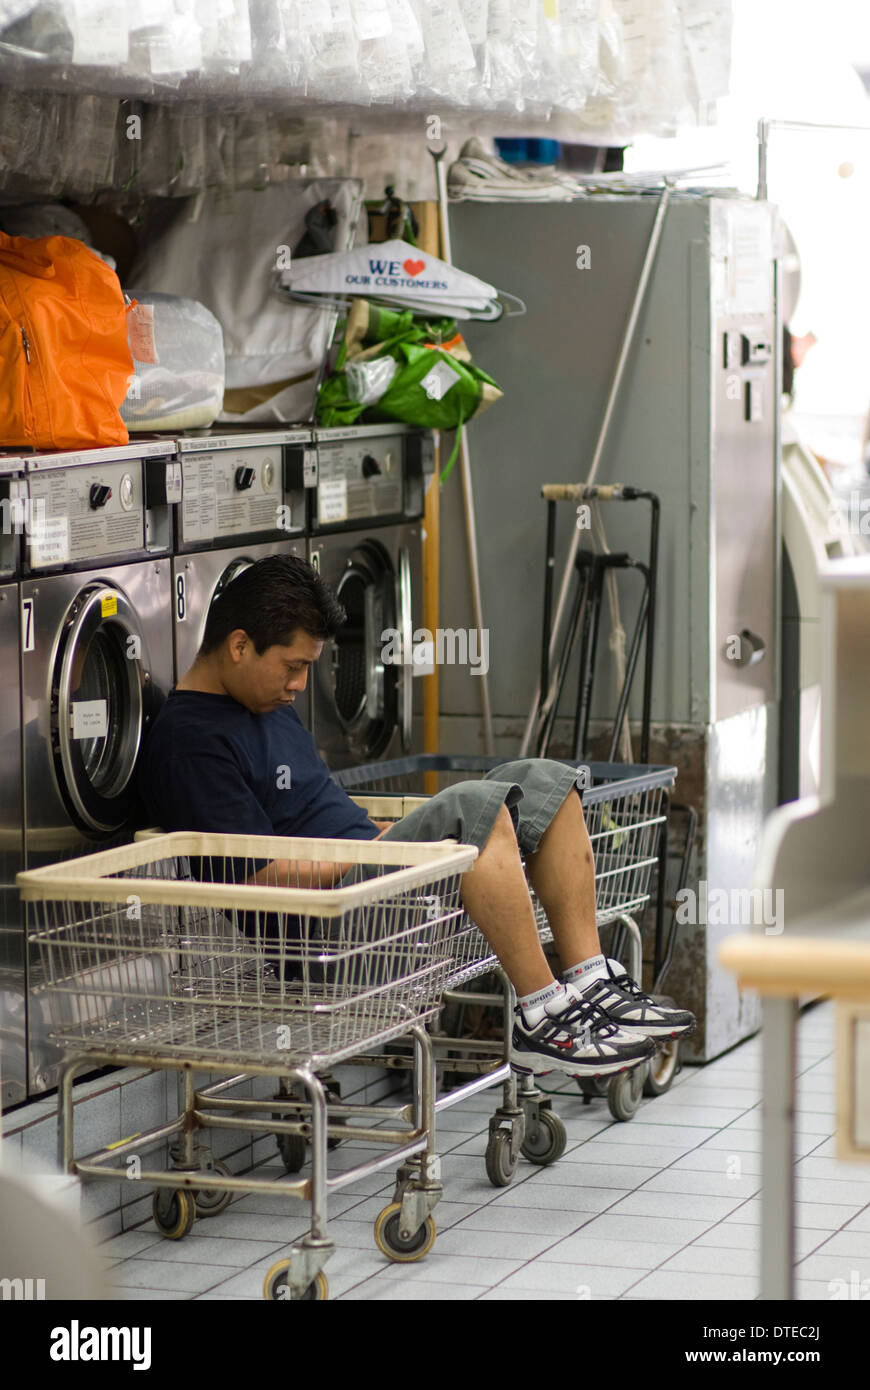 Laundromat wash stock photos laundromat wash stock images alamy man takes a nap in a basket inside a new york city laundromat craig solutioingenieria Gallery